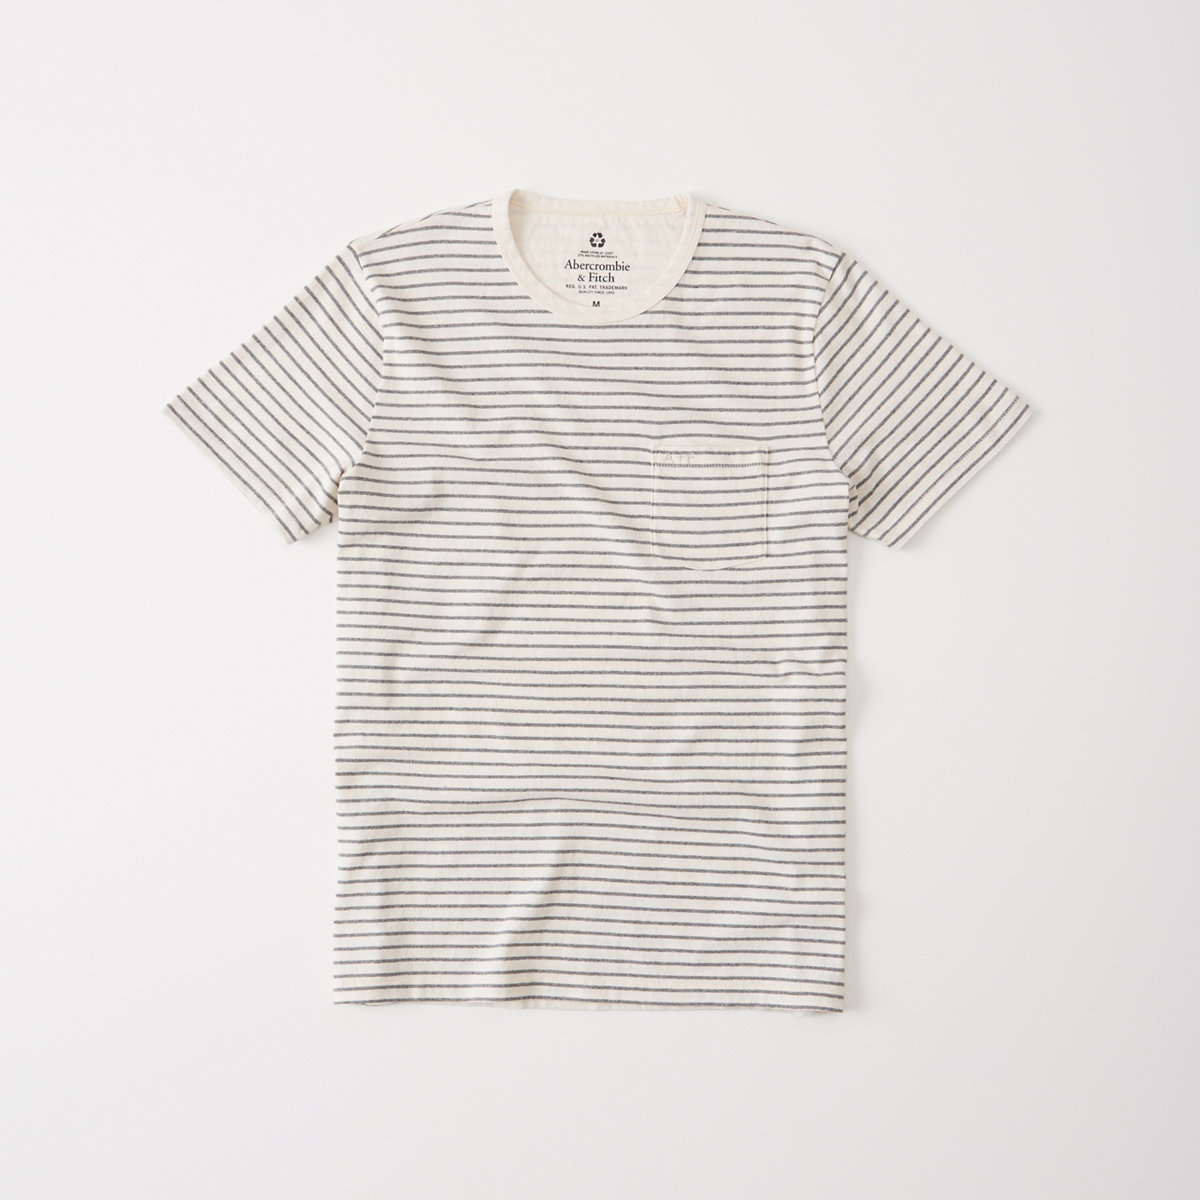 Recycled Fabric Striped Tee